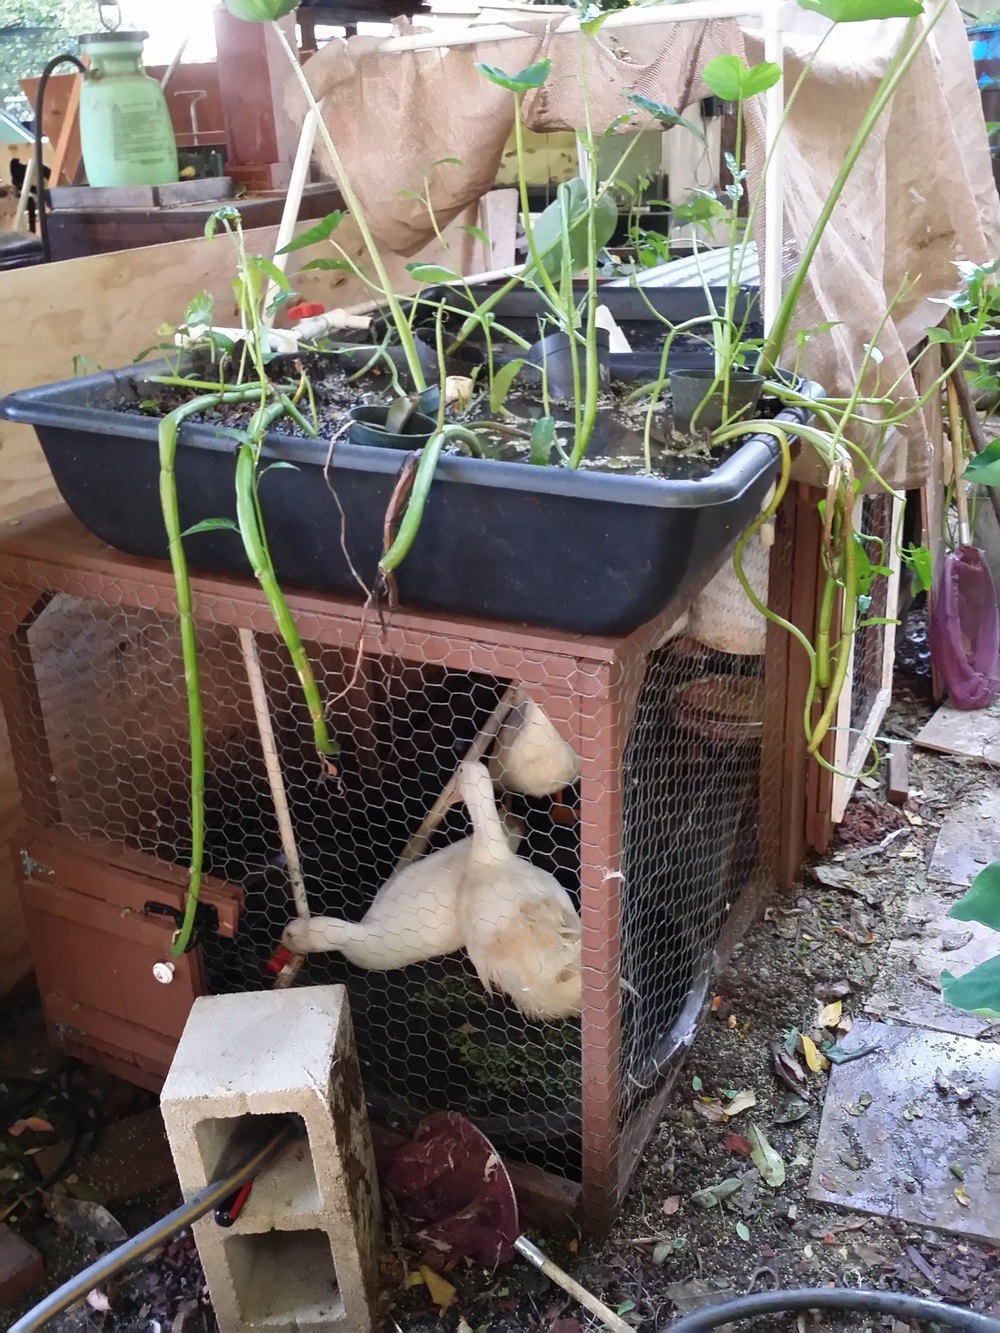 white ducks in an aquaponics like system.jpg